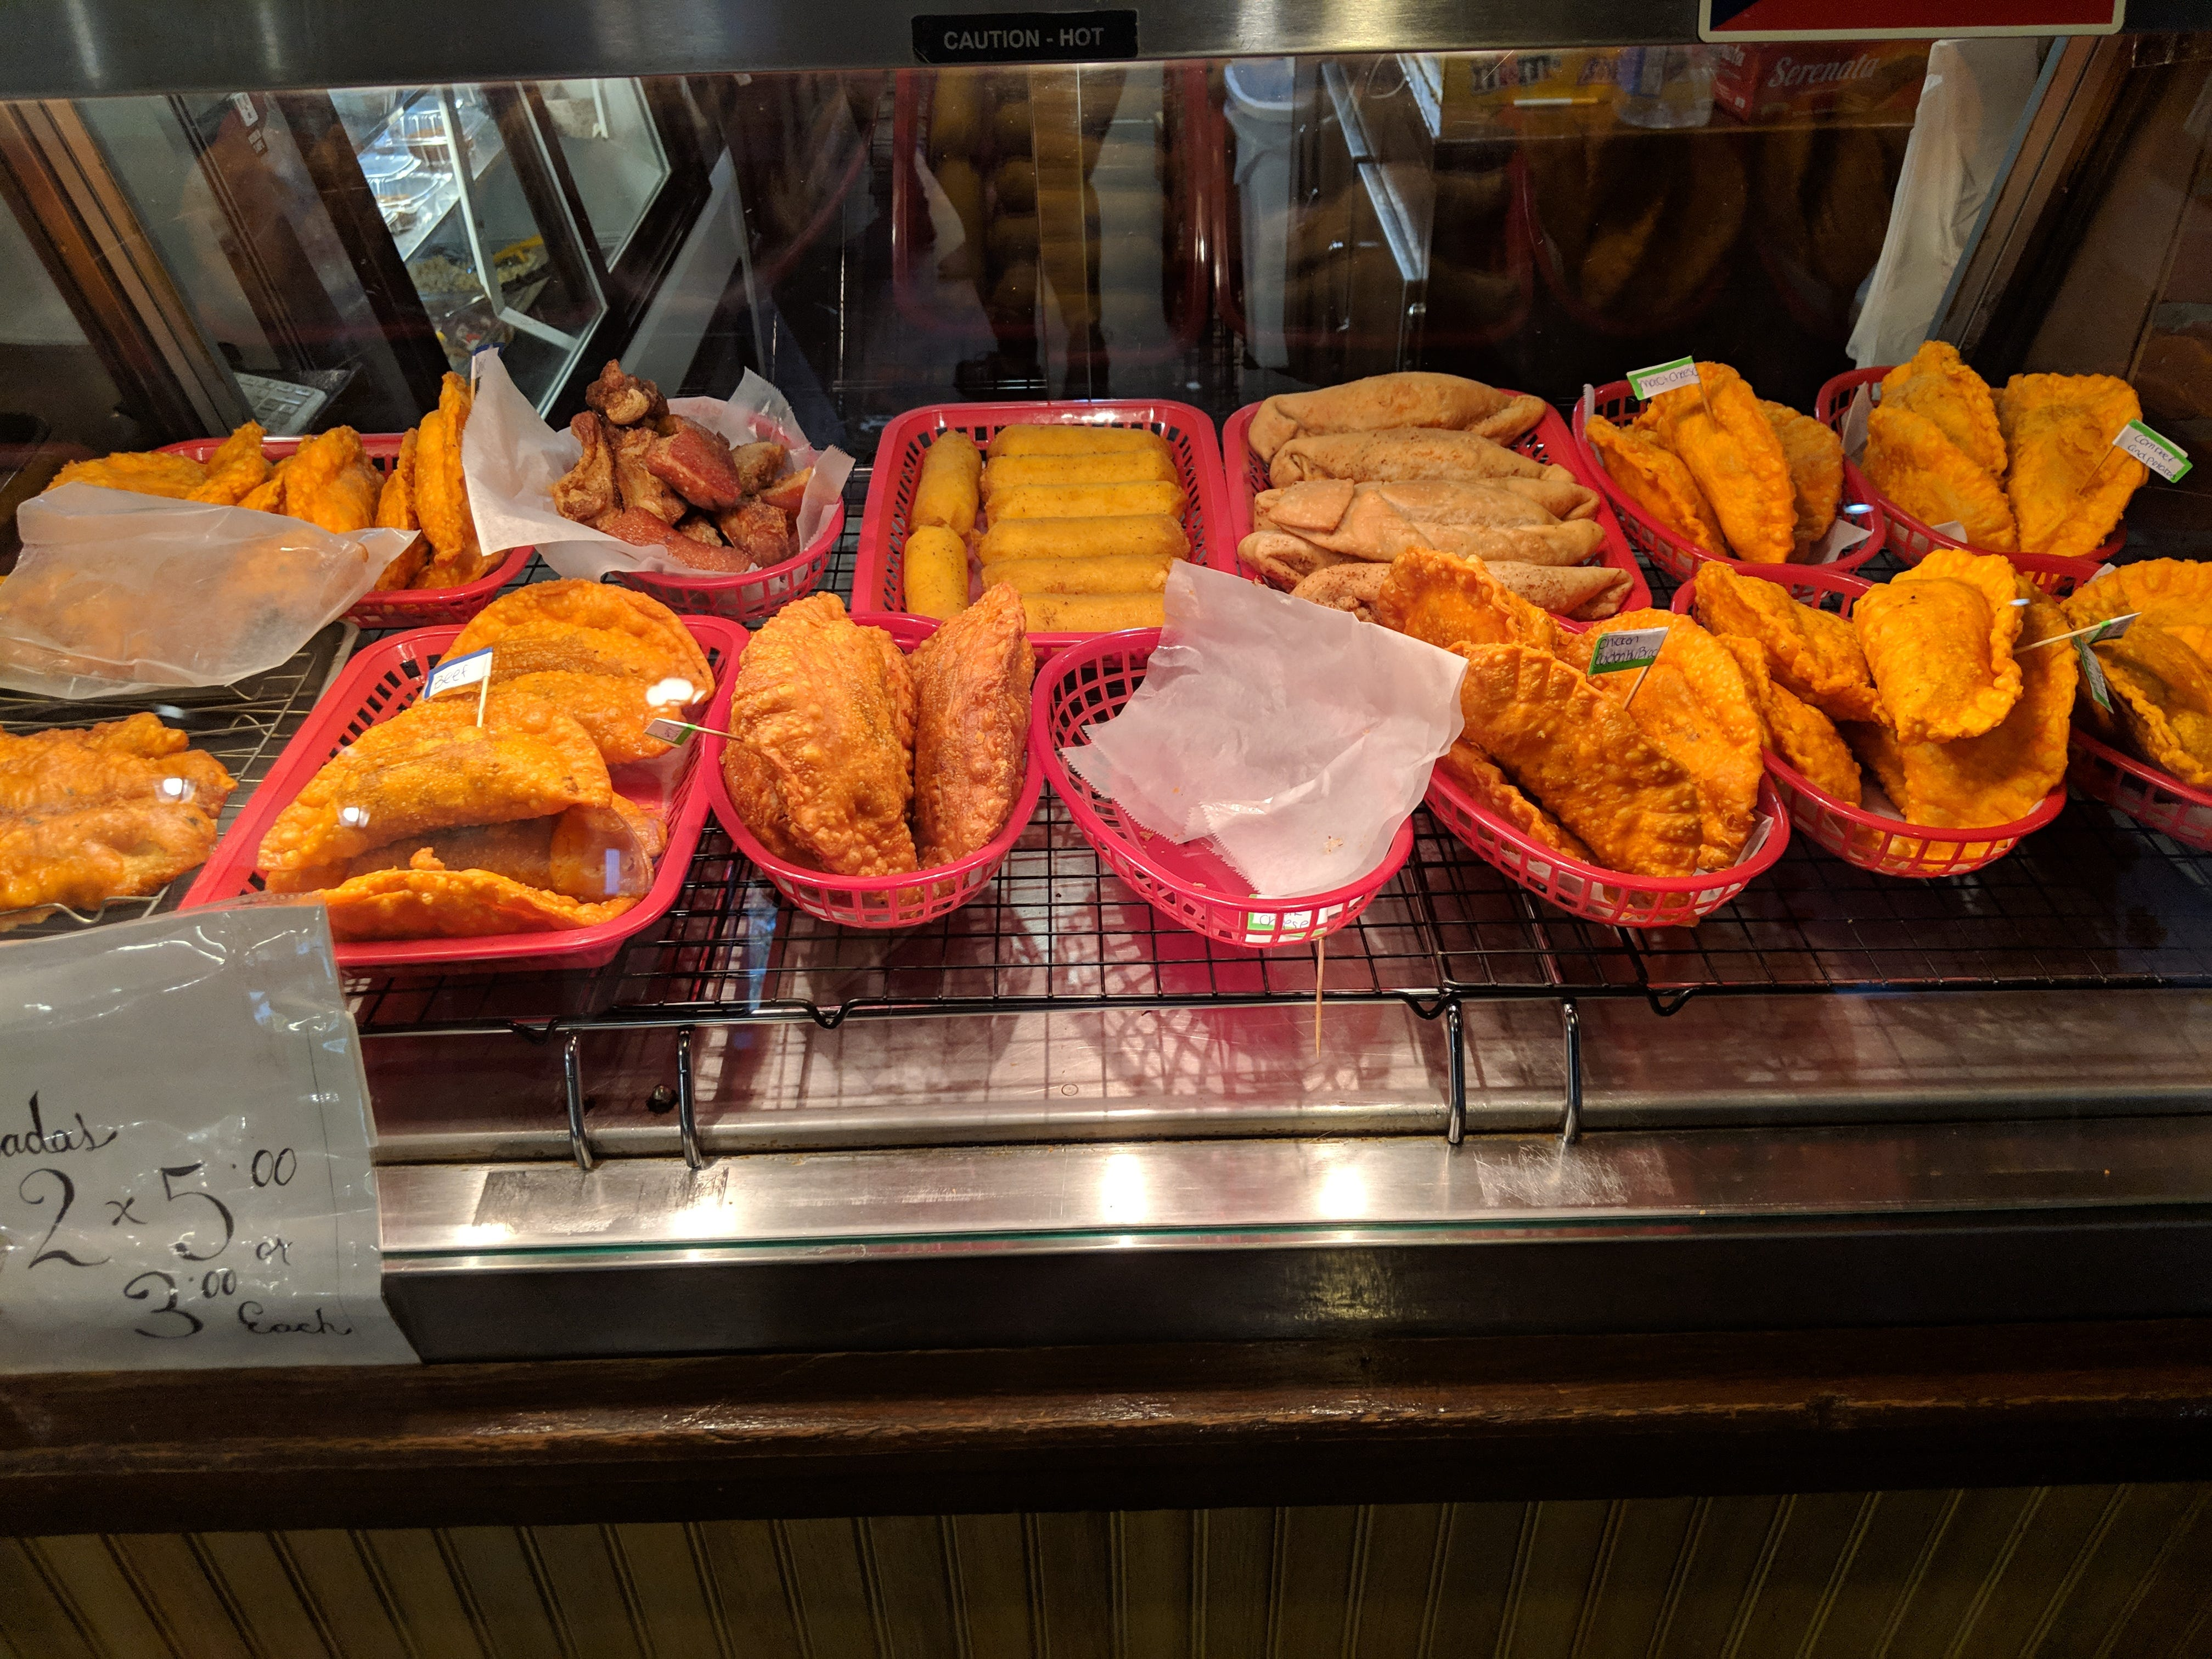 Some of the fried delicacies at La Olla Criolla.